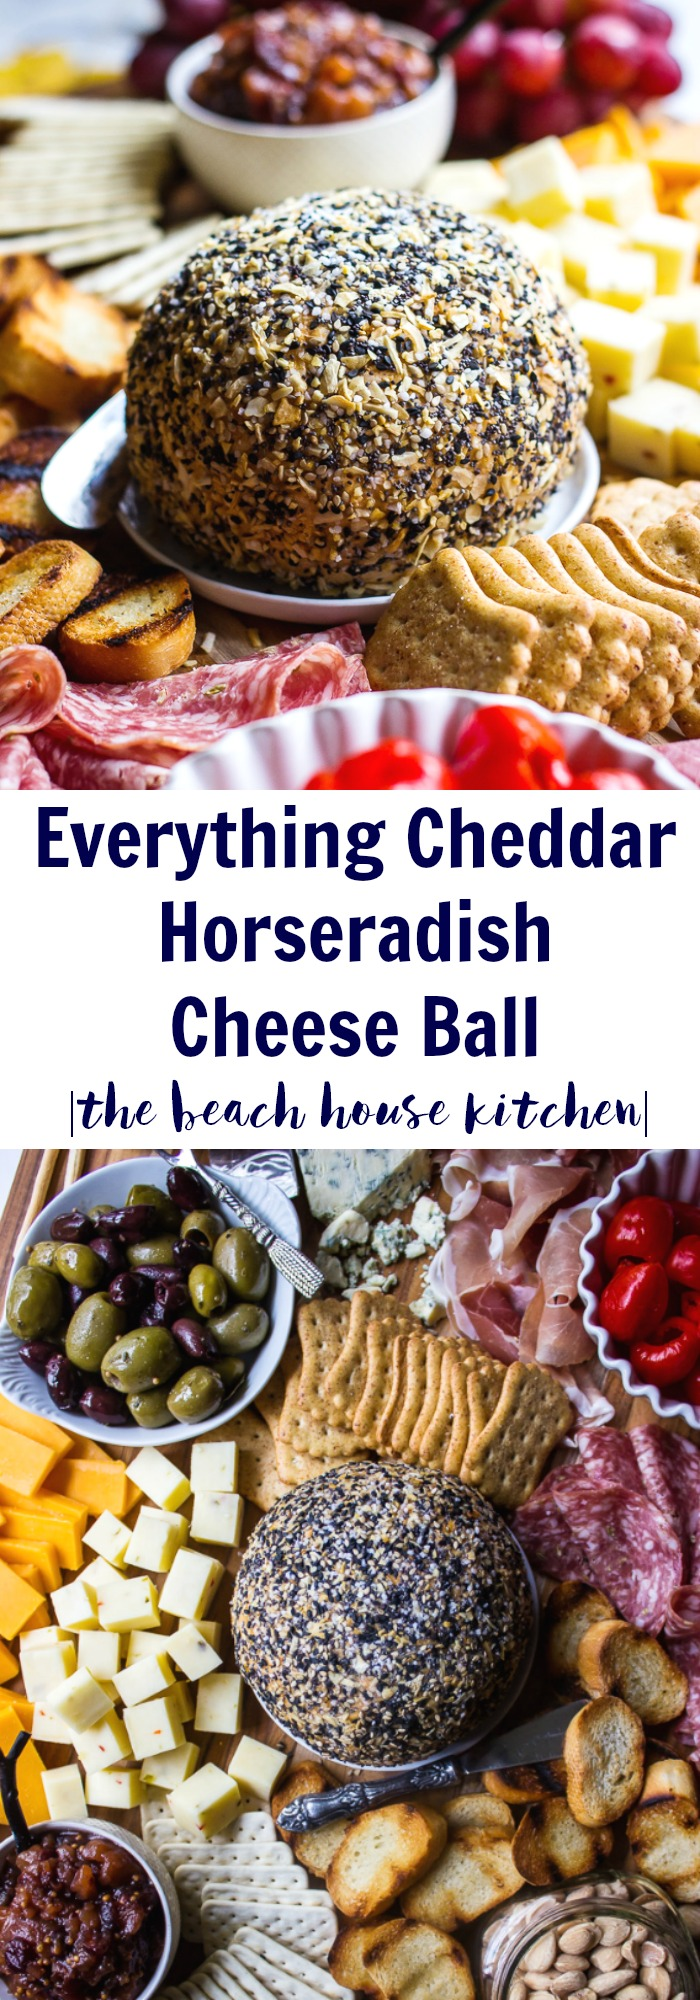 Everything Cheddar Horseradish Cheese Ball